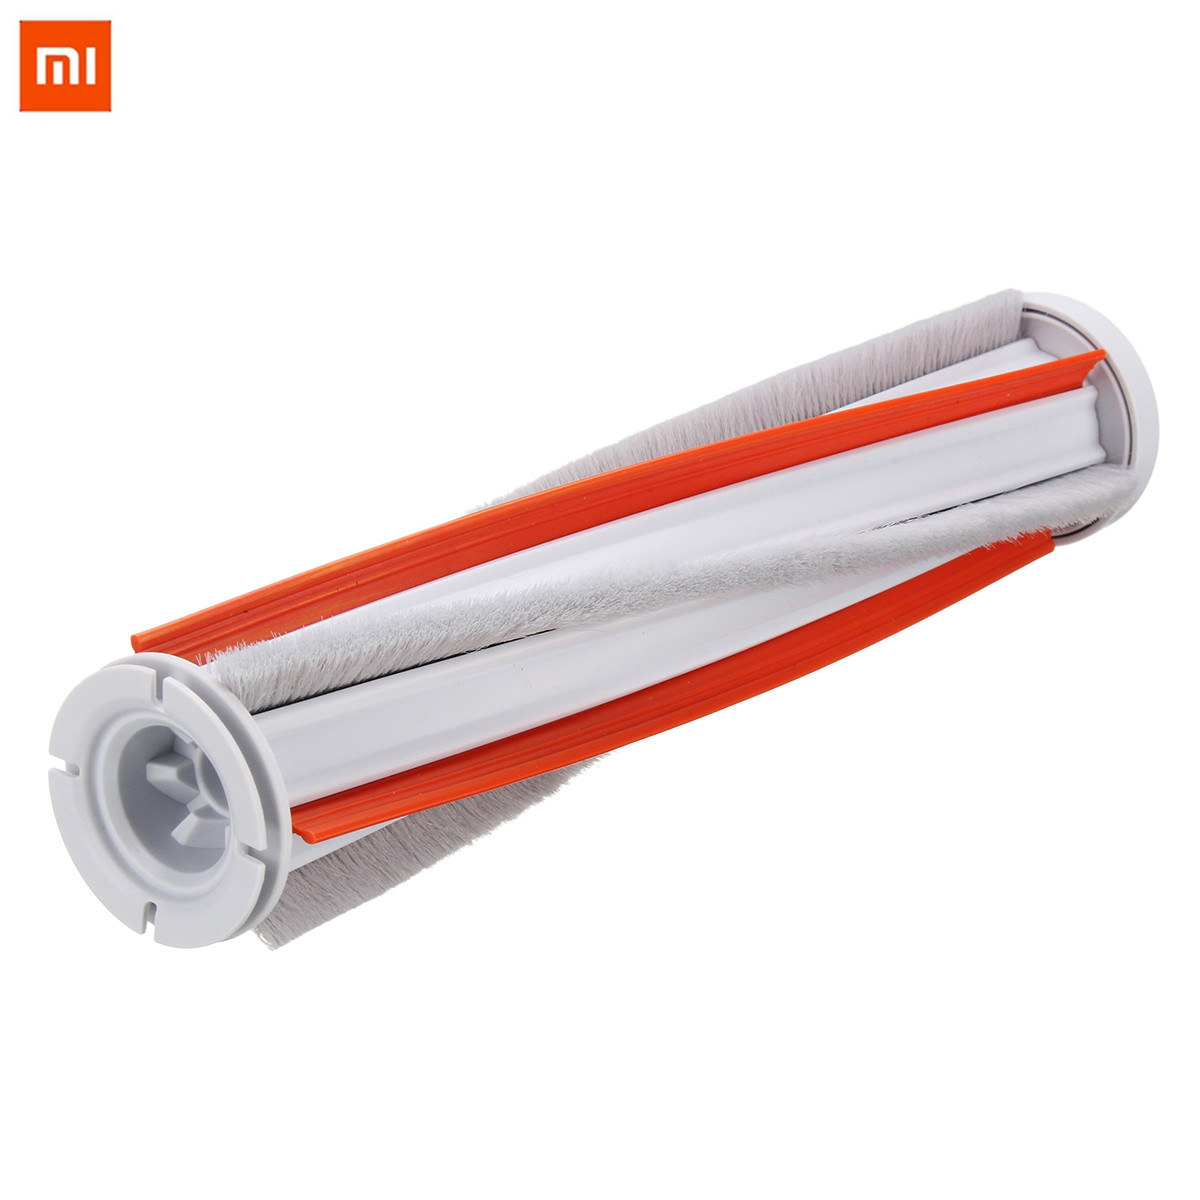 XIAOMI ROIDMI Fiber Cleaning Brush for XCQTXGS01RM Cordless Vacuum Cleaner цена 2017